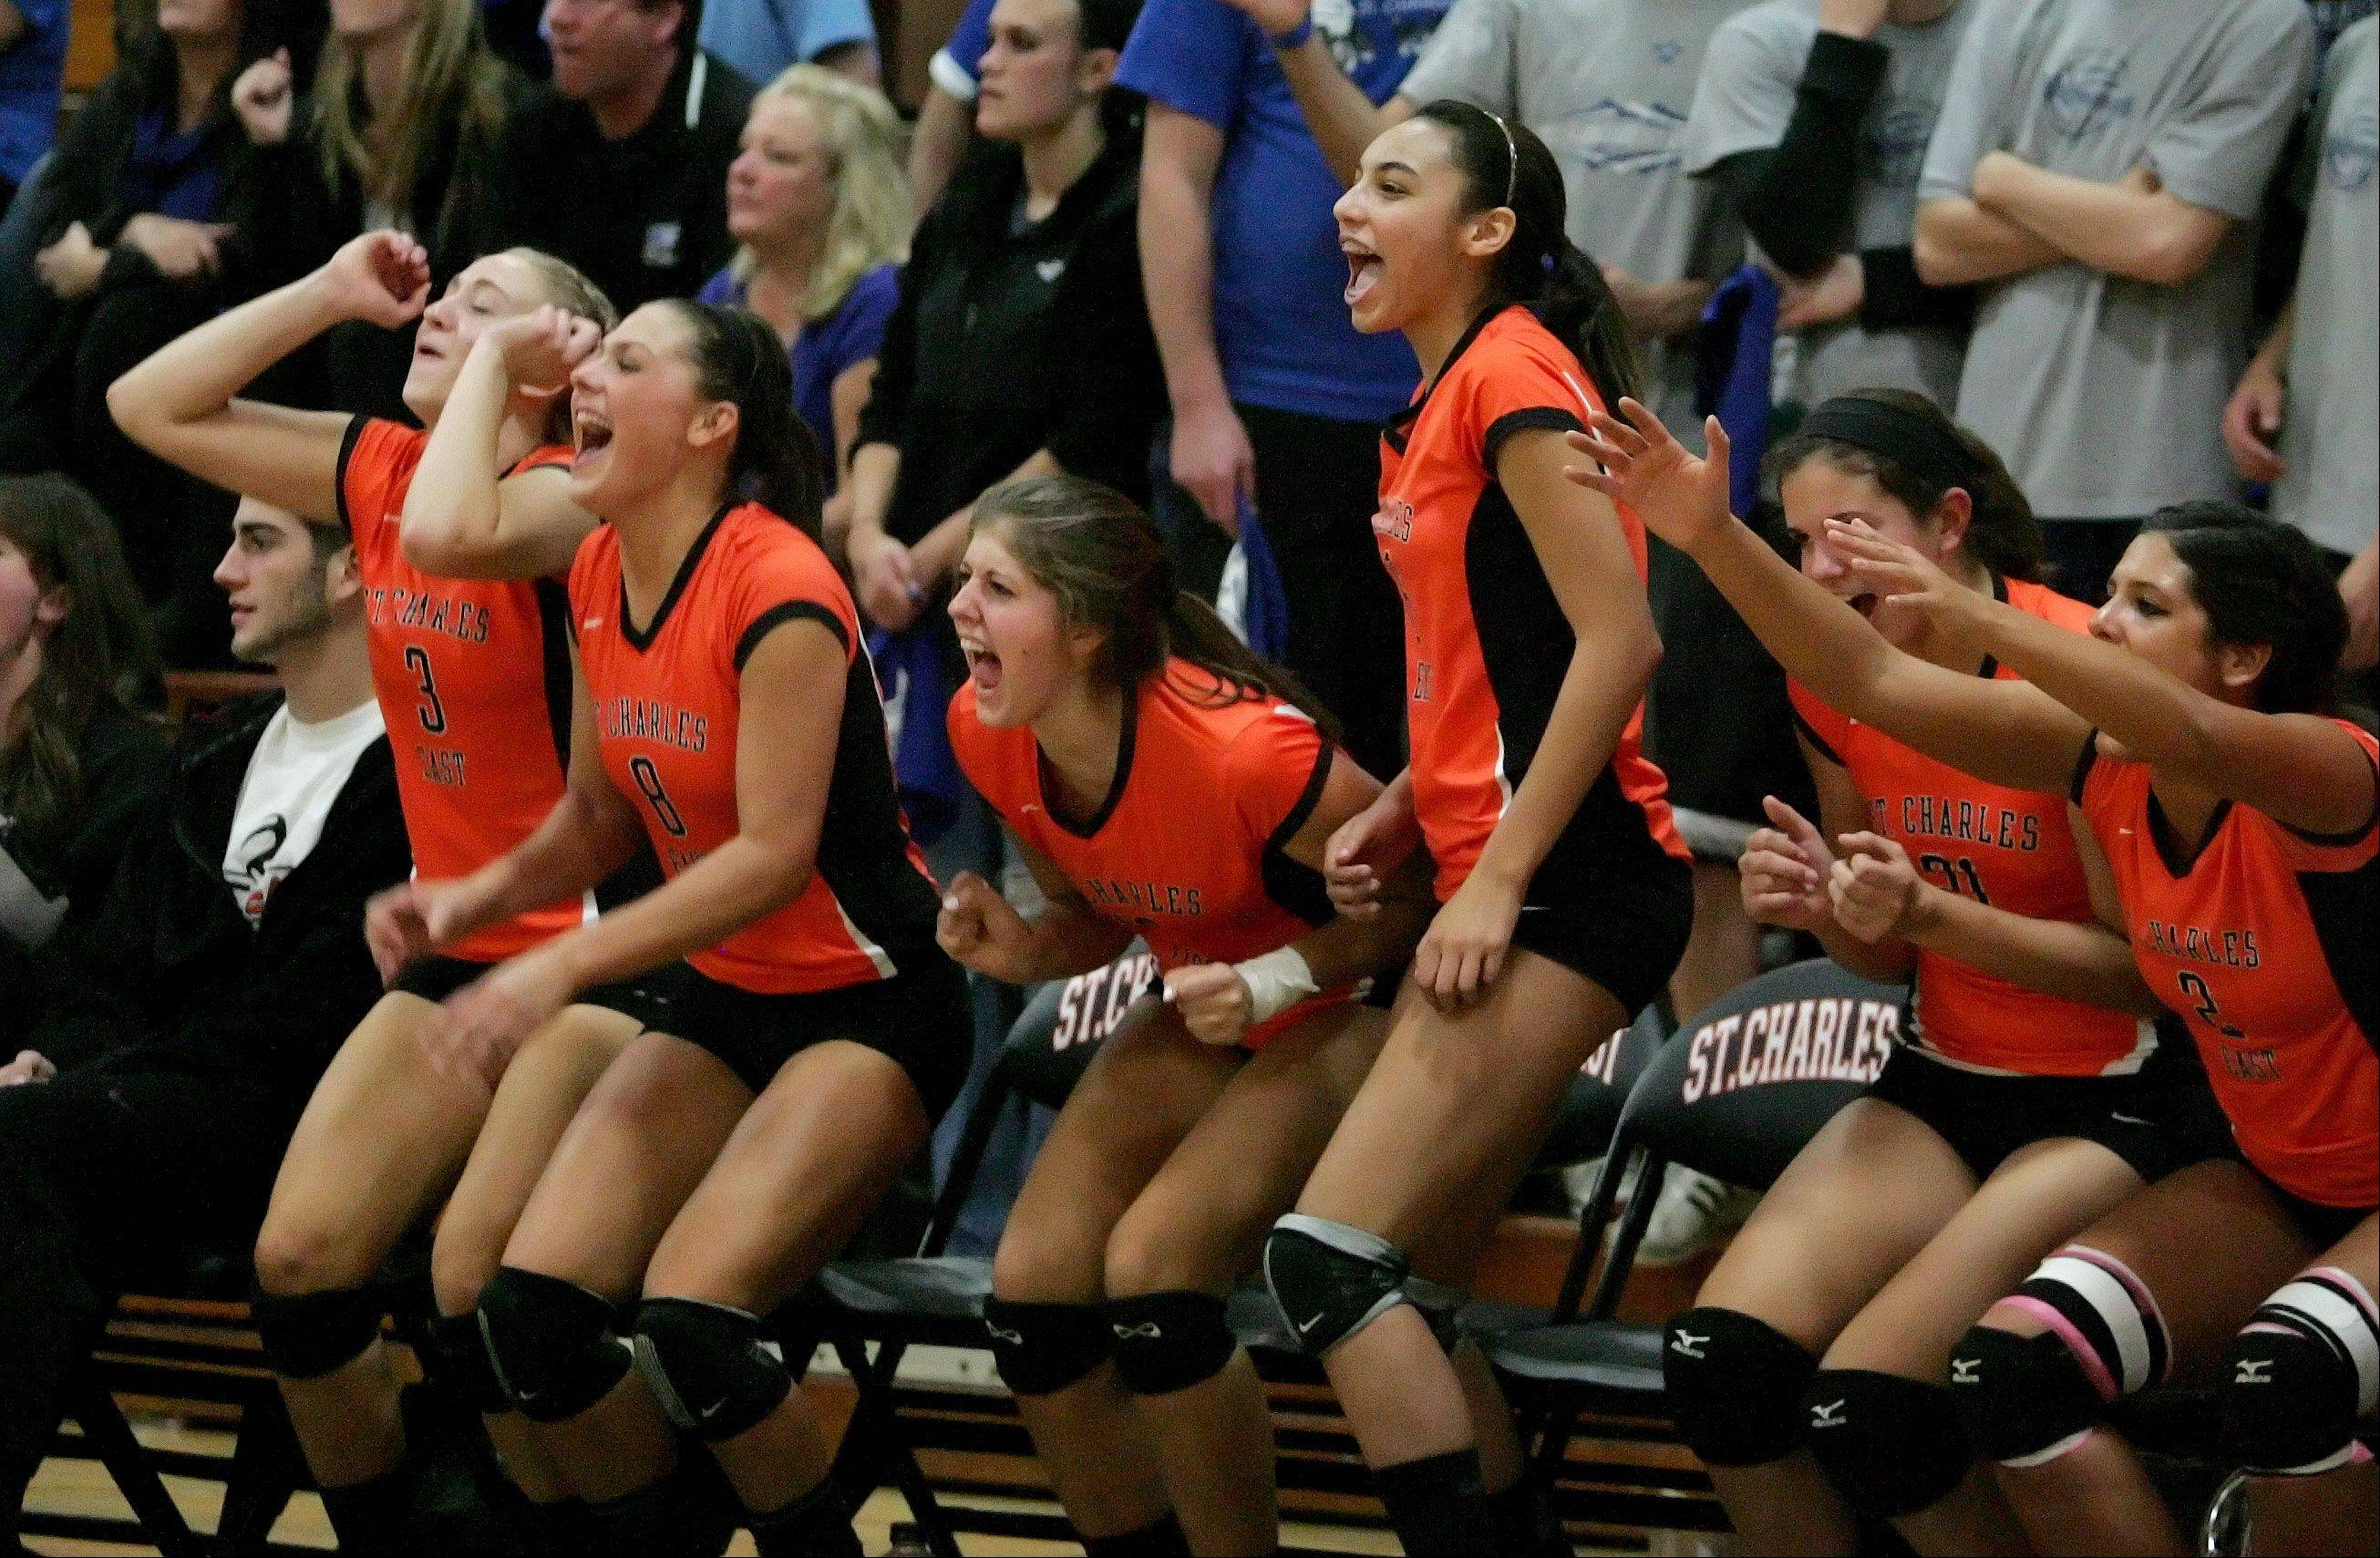 The St. Charles East bench reacts during their 2-1 win over St. Charles North in Class 4A sectional volleyball semifinals Tuesday.